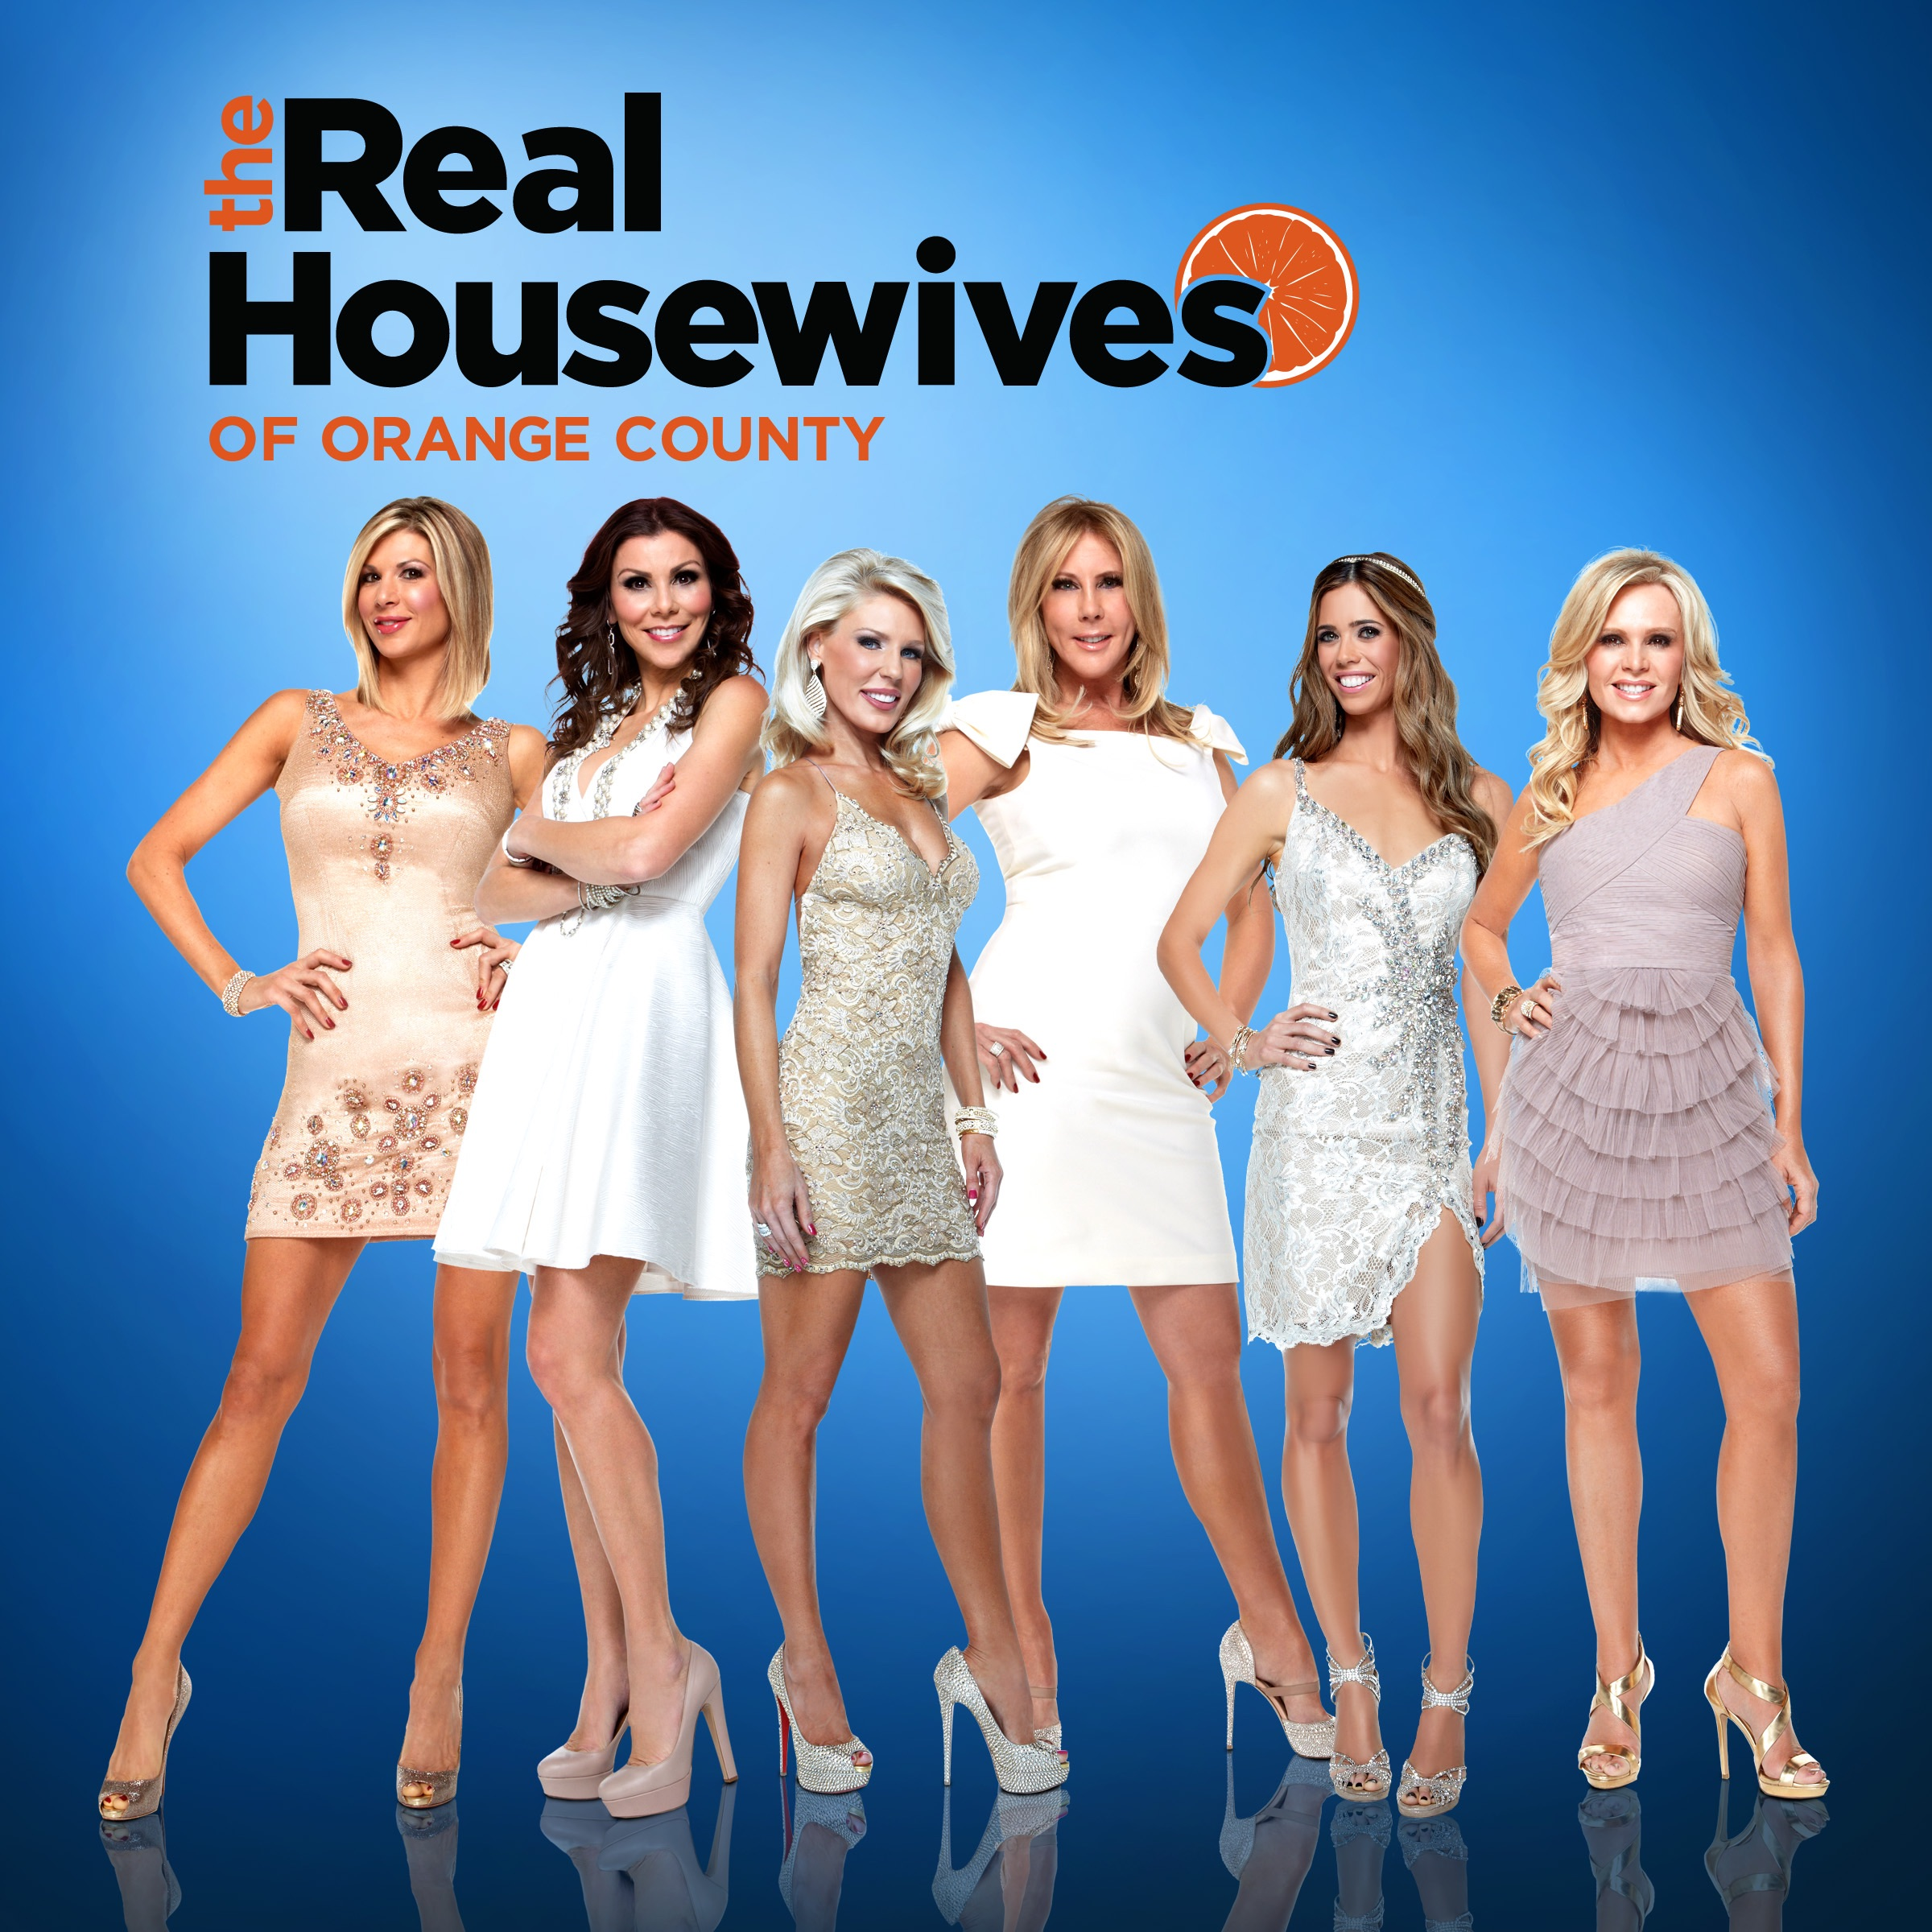 The Real Housewives of Orange County - Season 7 Episode 13 ...